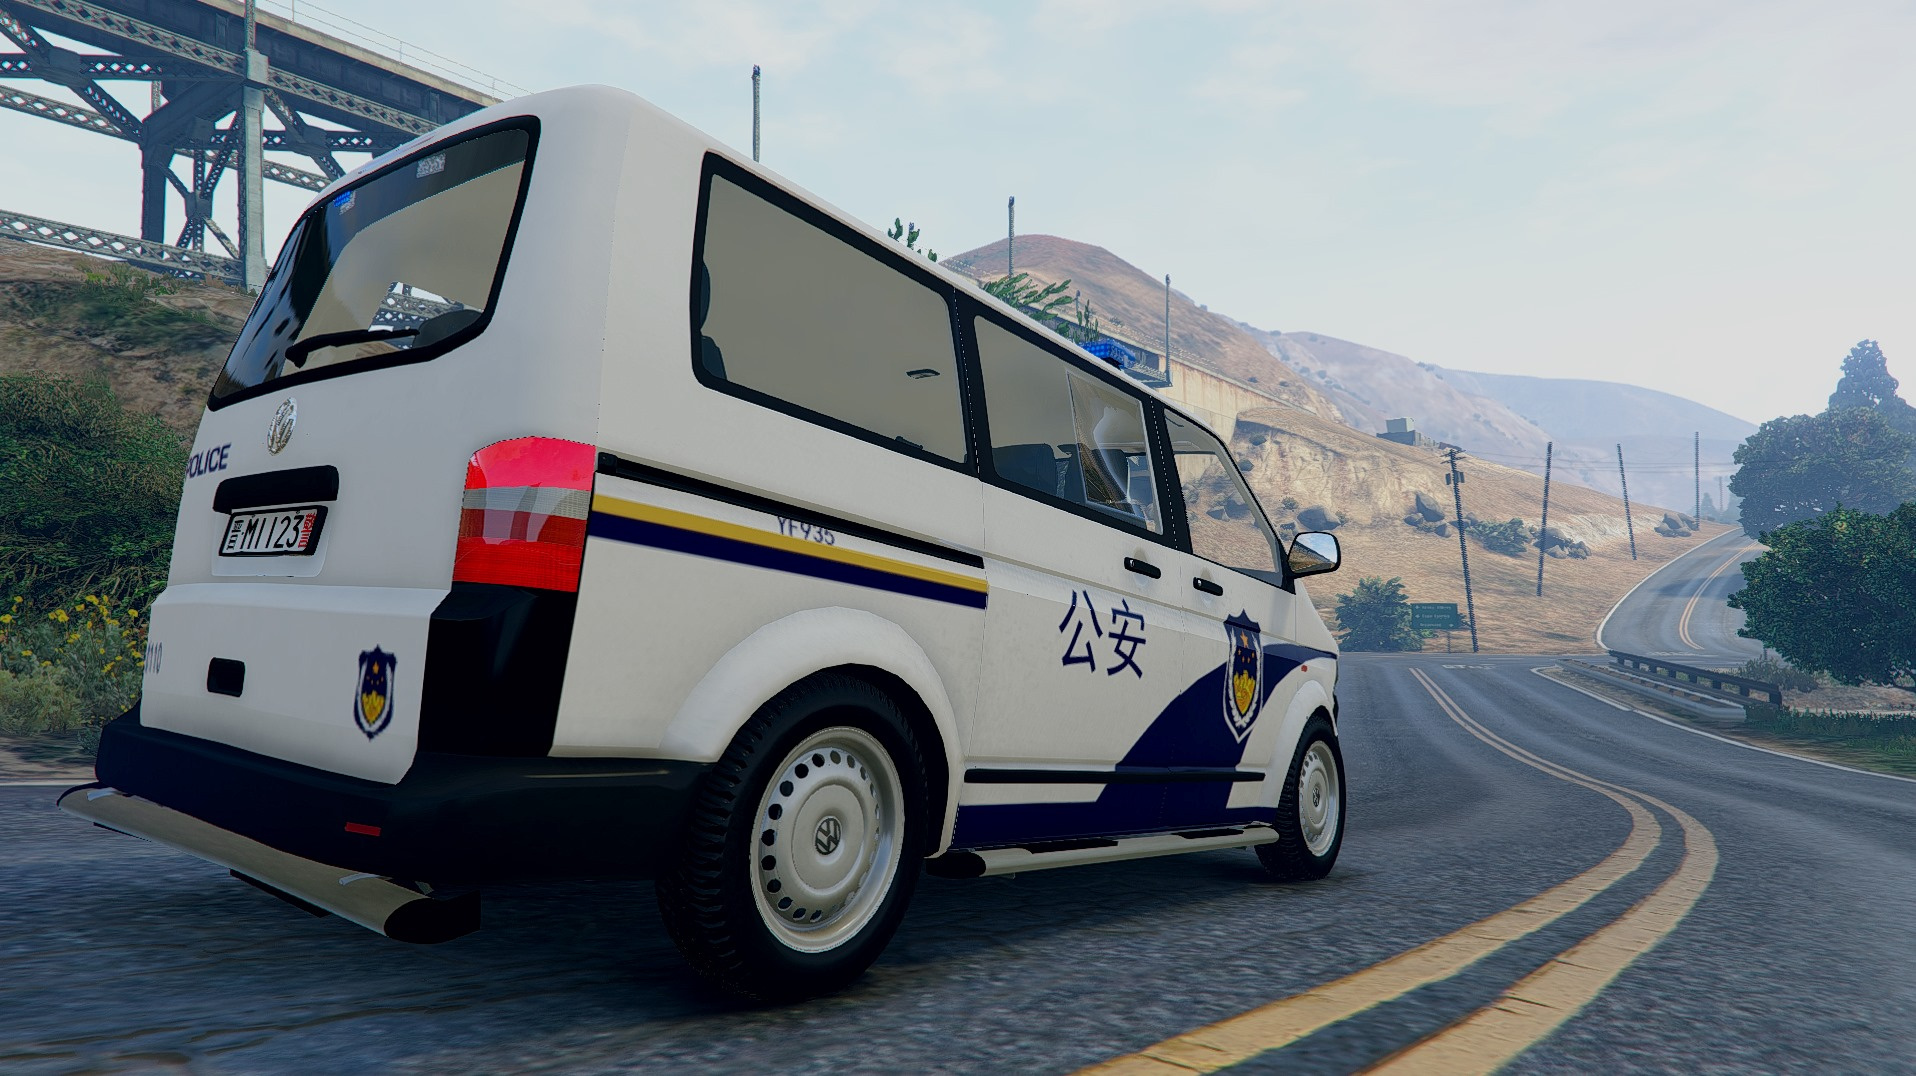 Volkswagen T5 With Leds Chinese Police 大众t5 中国警车 Gta5